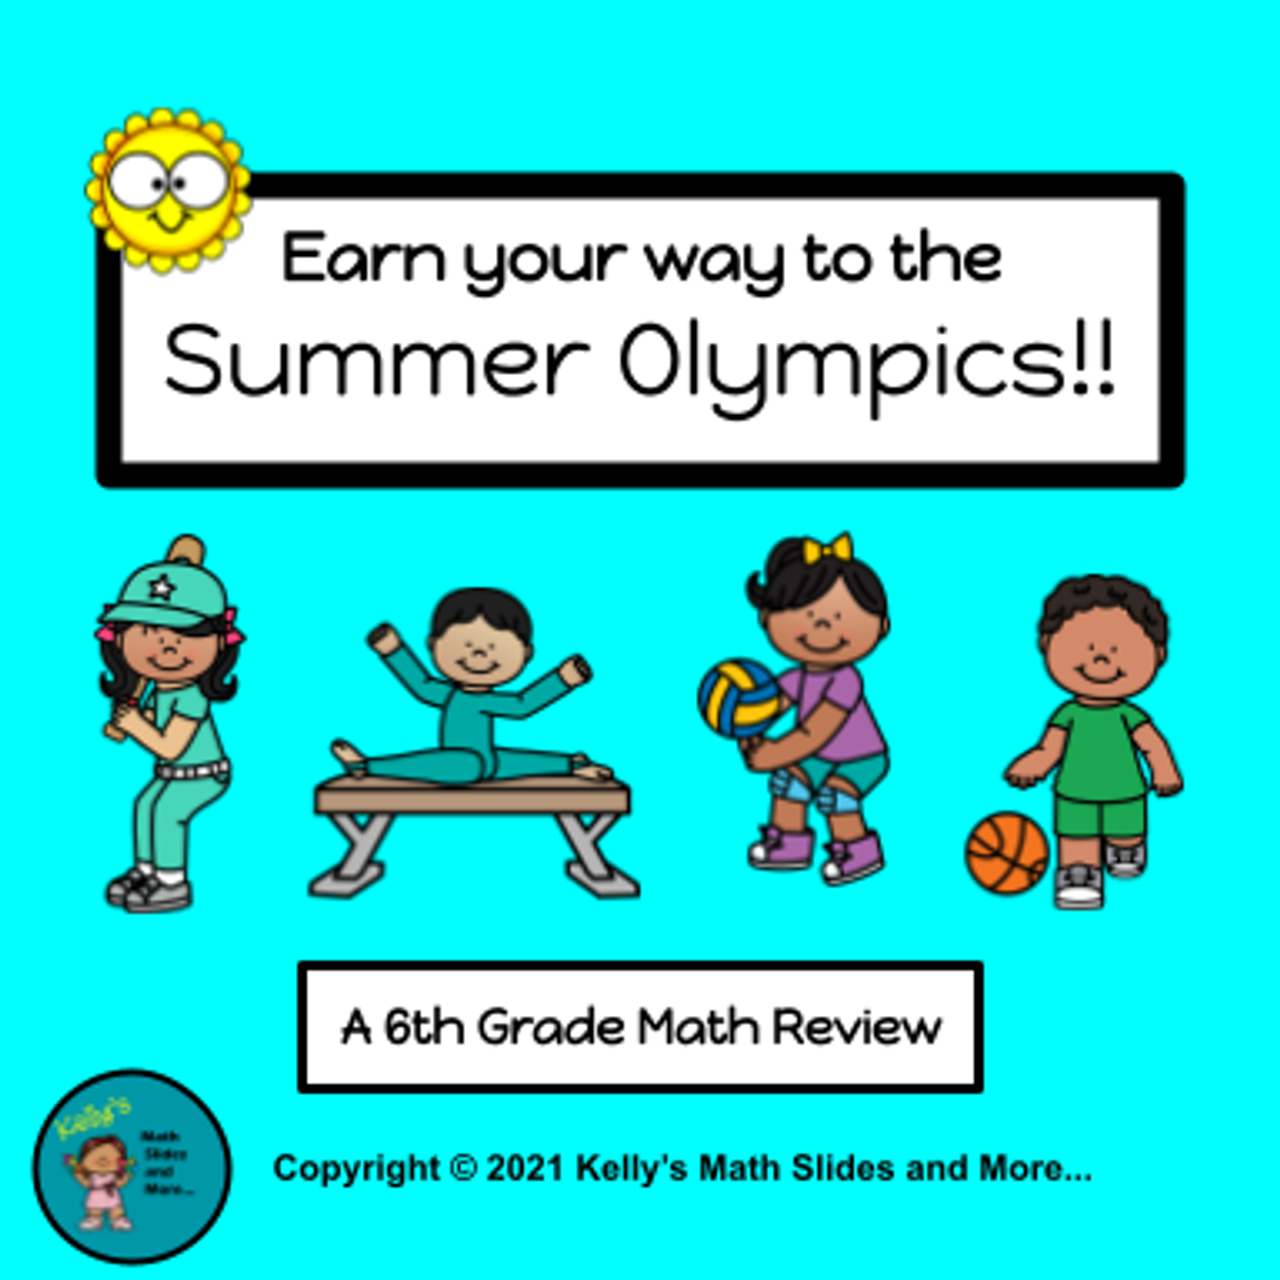 Math Review for 6th Grade